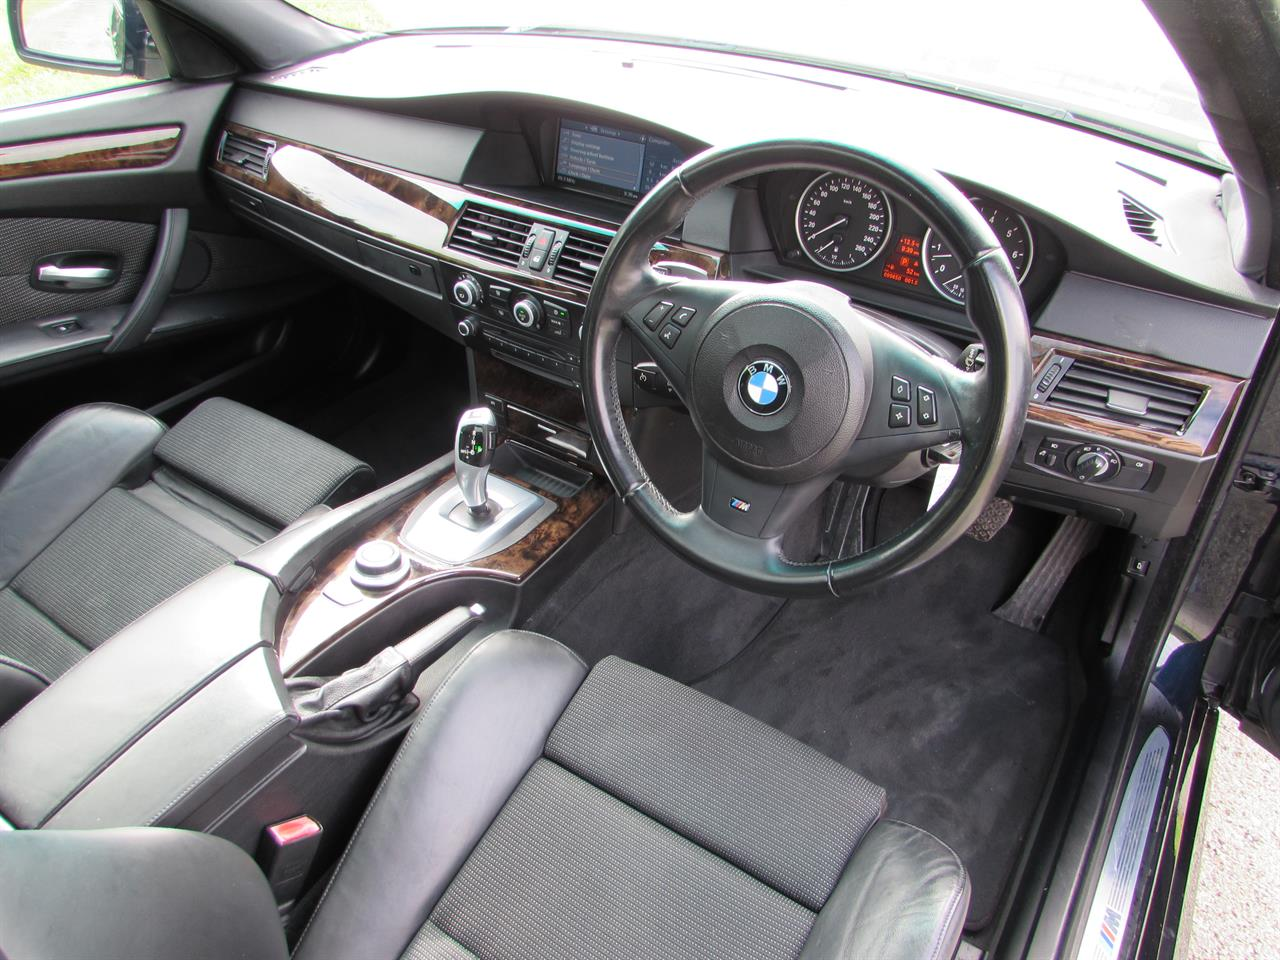 2009 BMW 525I | only $59 weekly